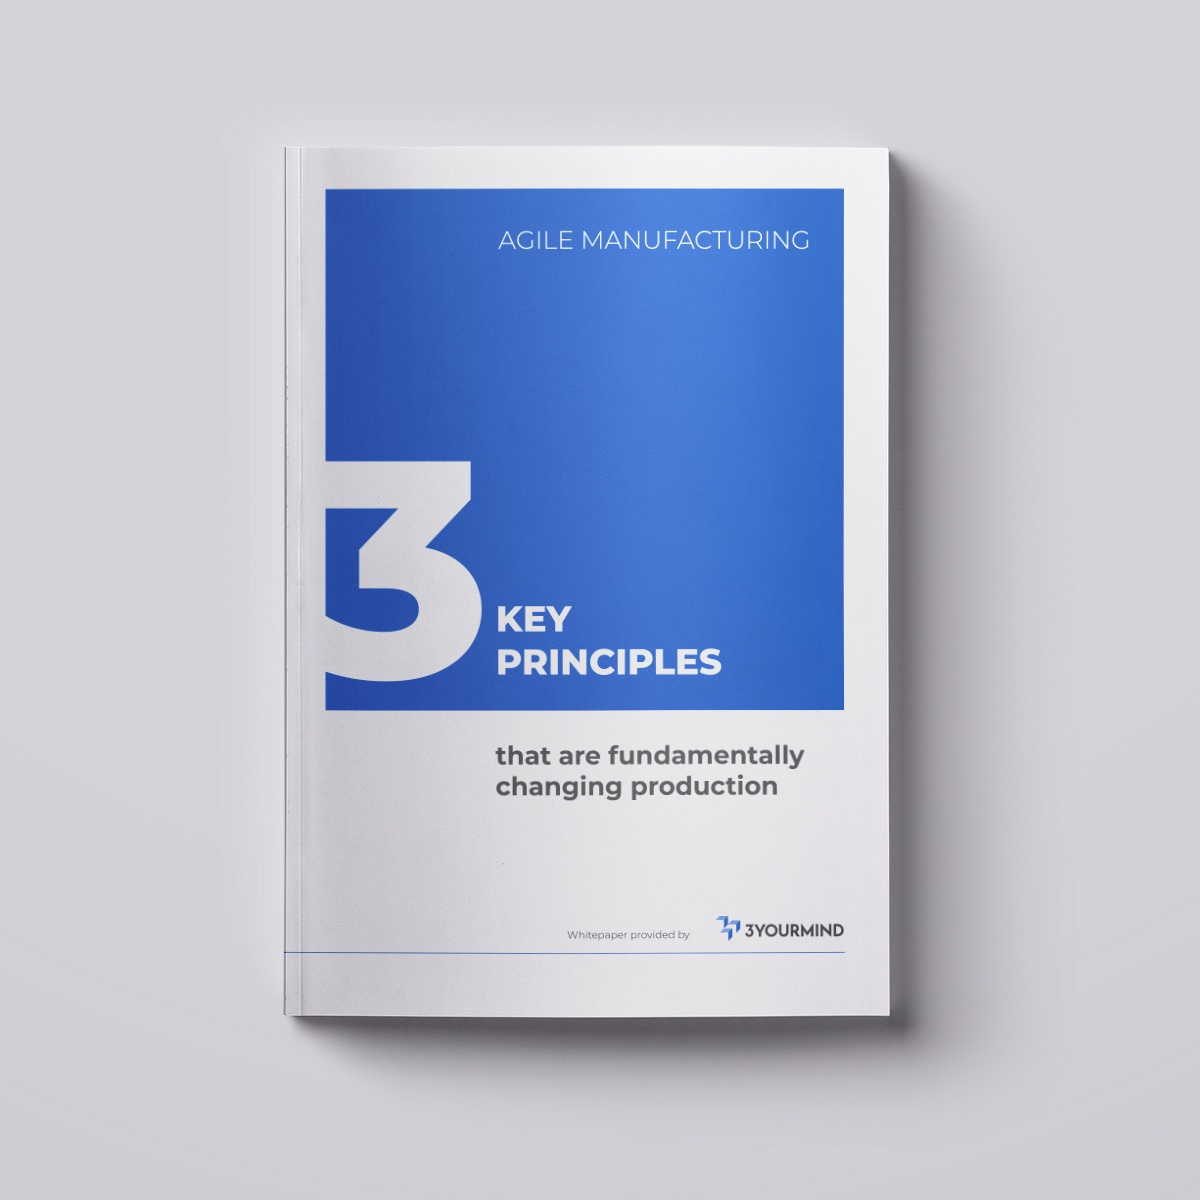 Agile Manufacturing White Paper Cover